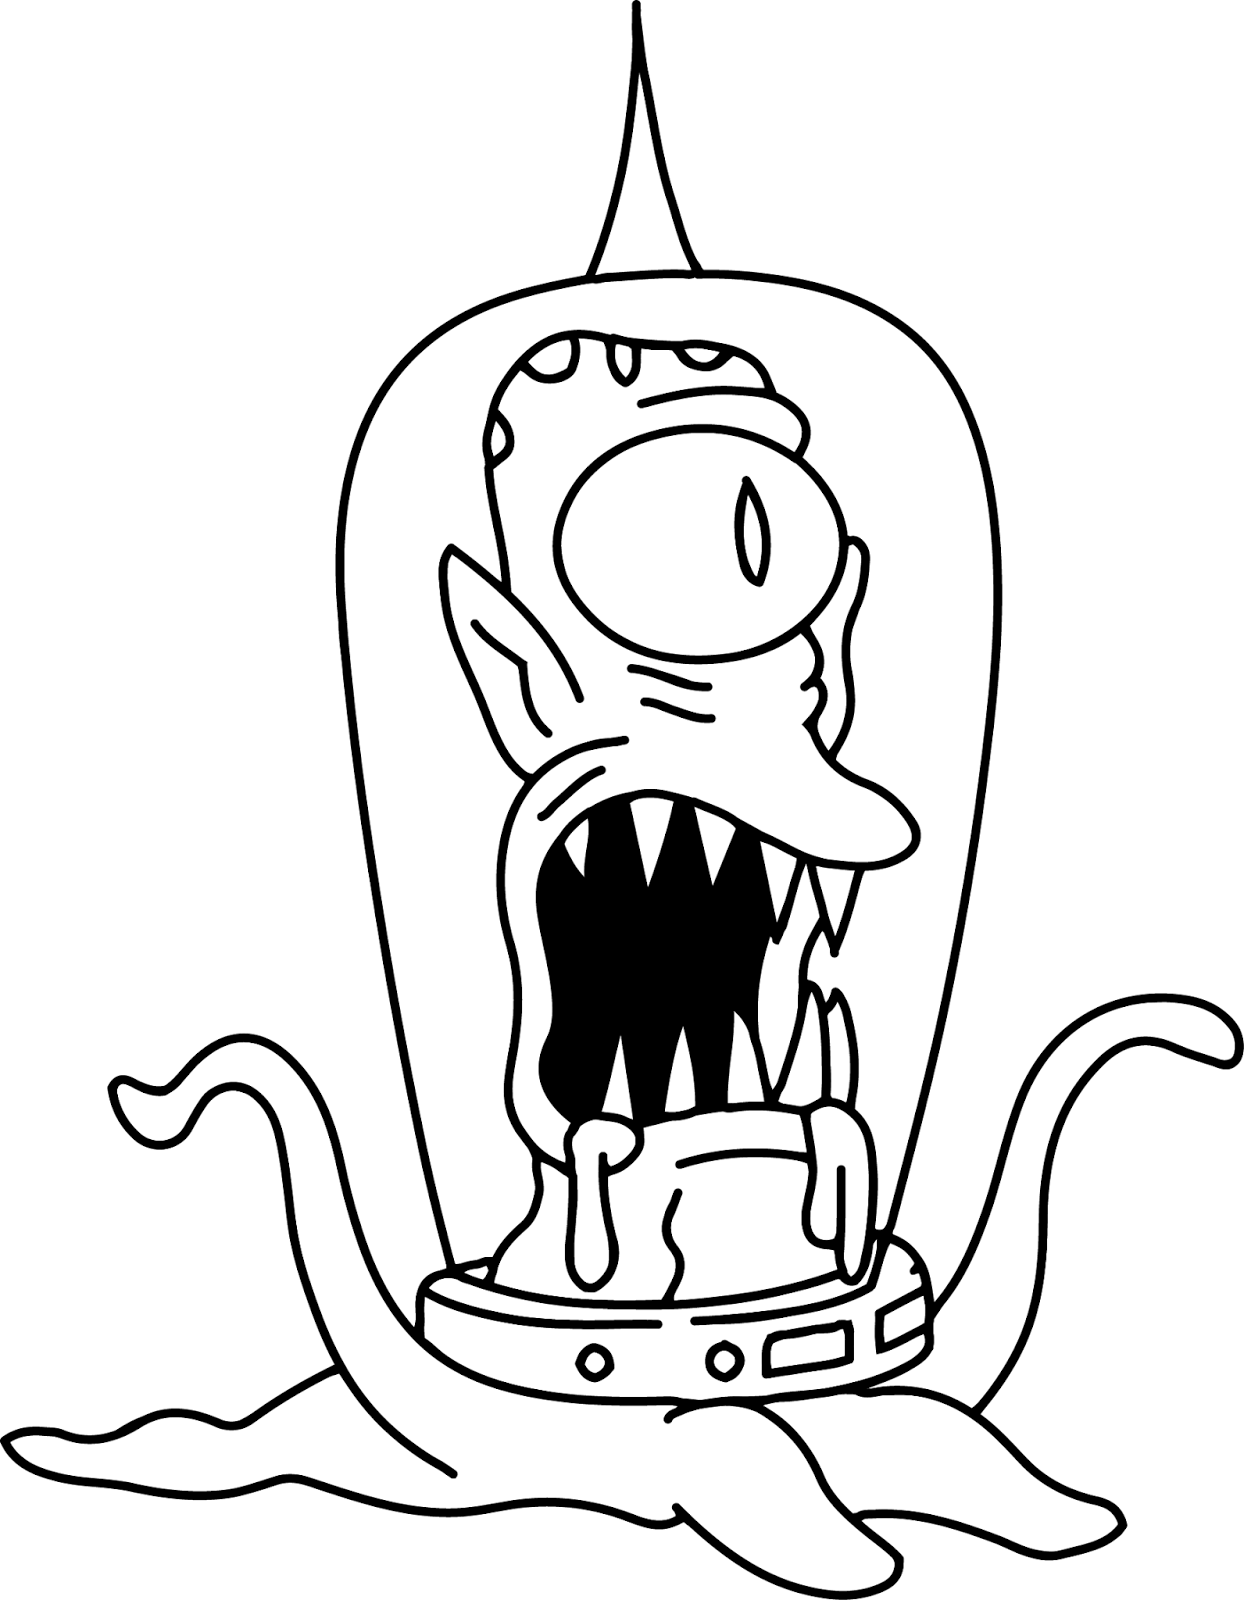 Cartoons Coloring Pages: Bart Simpsons Coloring Pages | 1600x1244